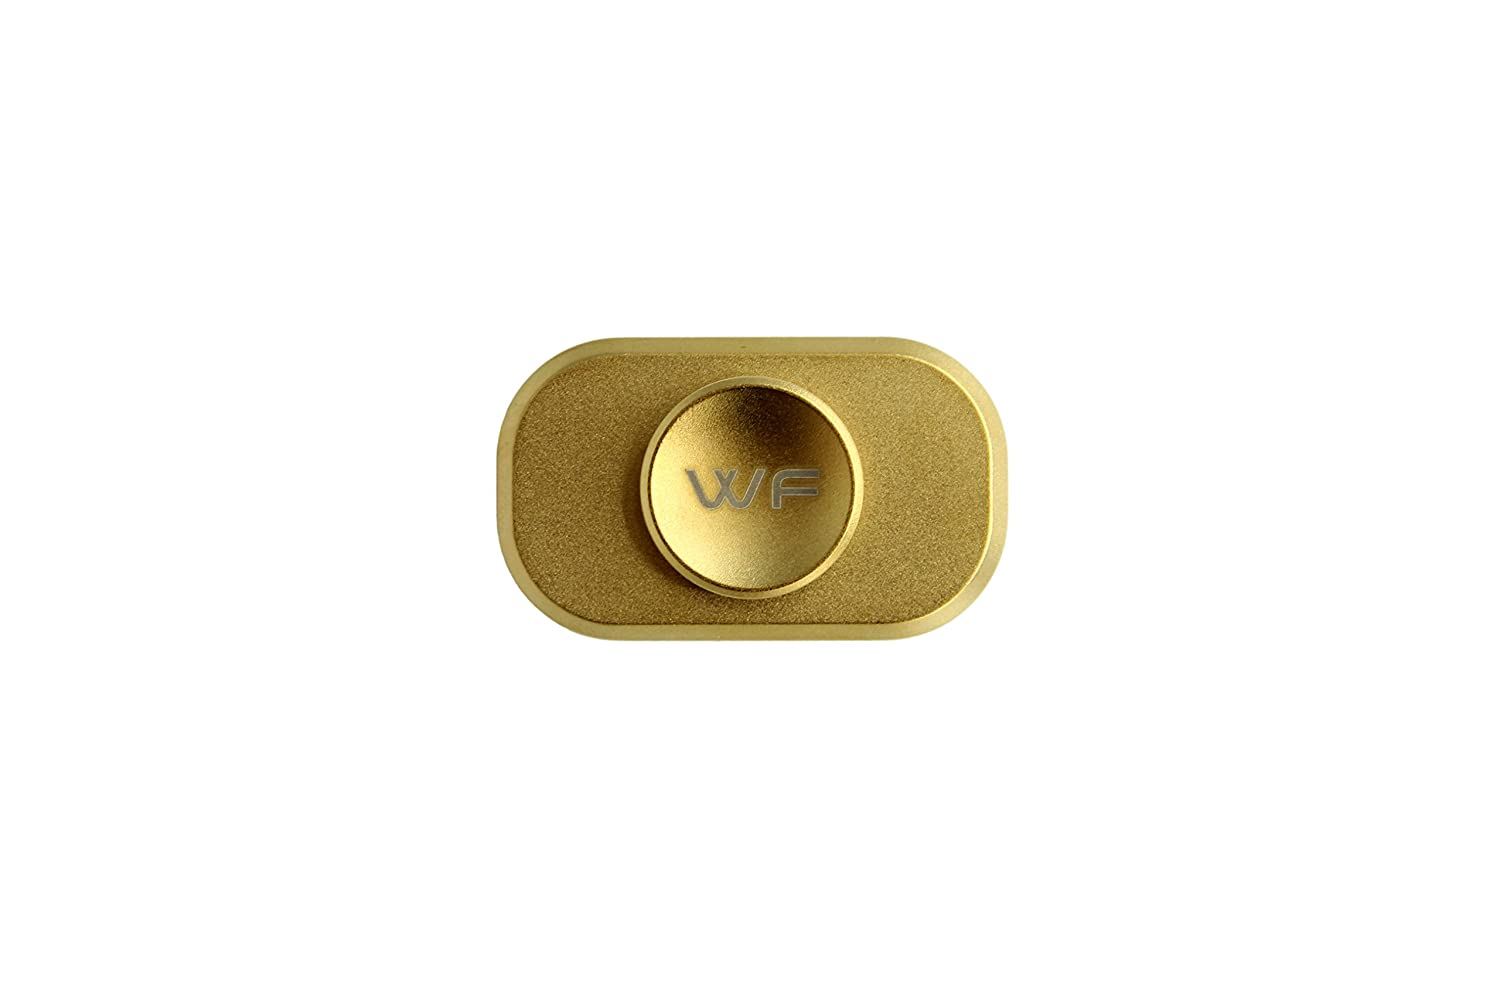 Designed for Stress and Anxiety Relief. Gold WeFidget Original The Bar Premium Hand Spinner